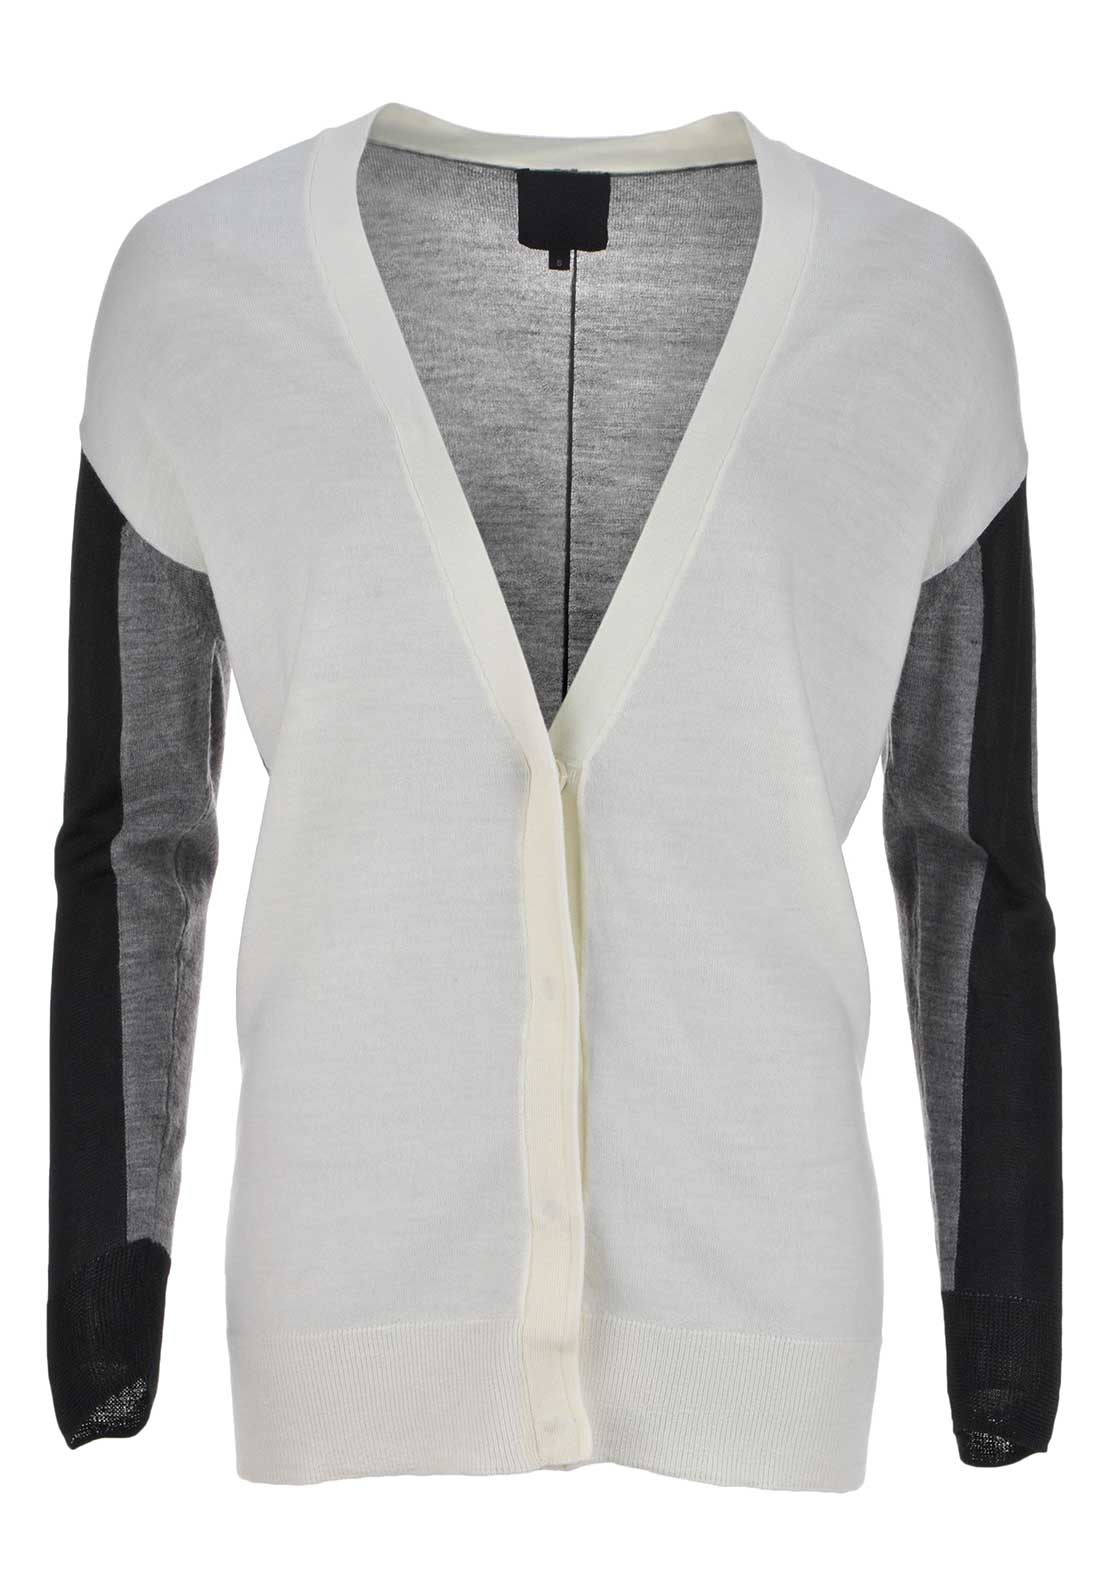 Inwear Lana Merino Wool Colour Block Long Length Cardigan, White and Grey